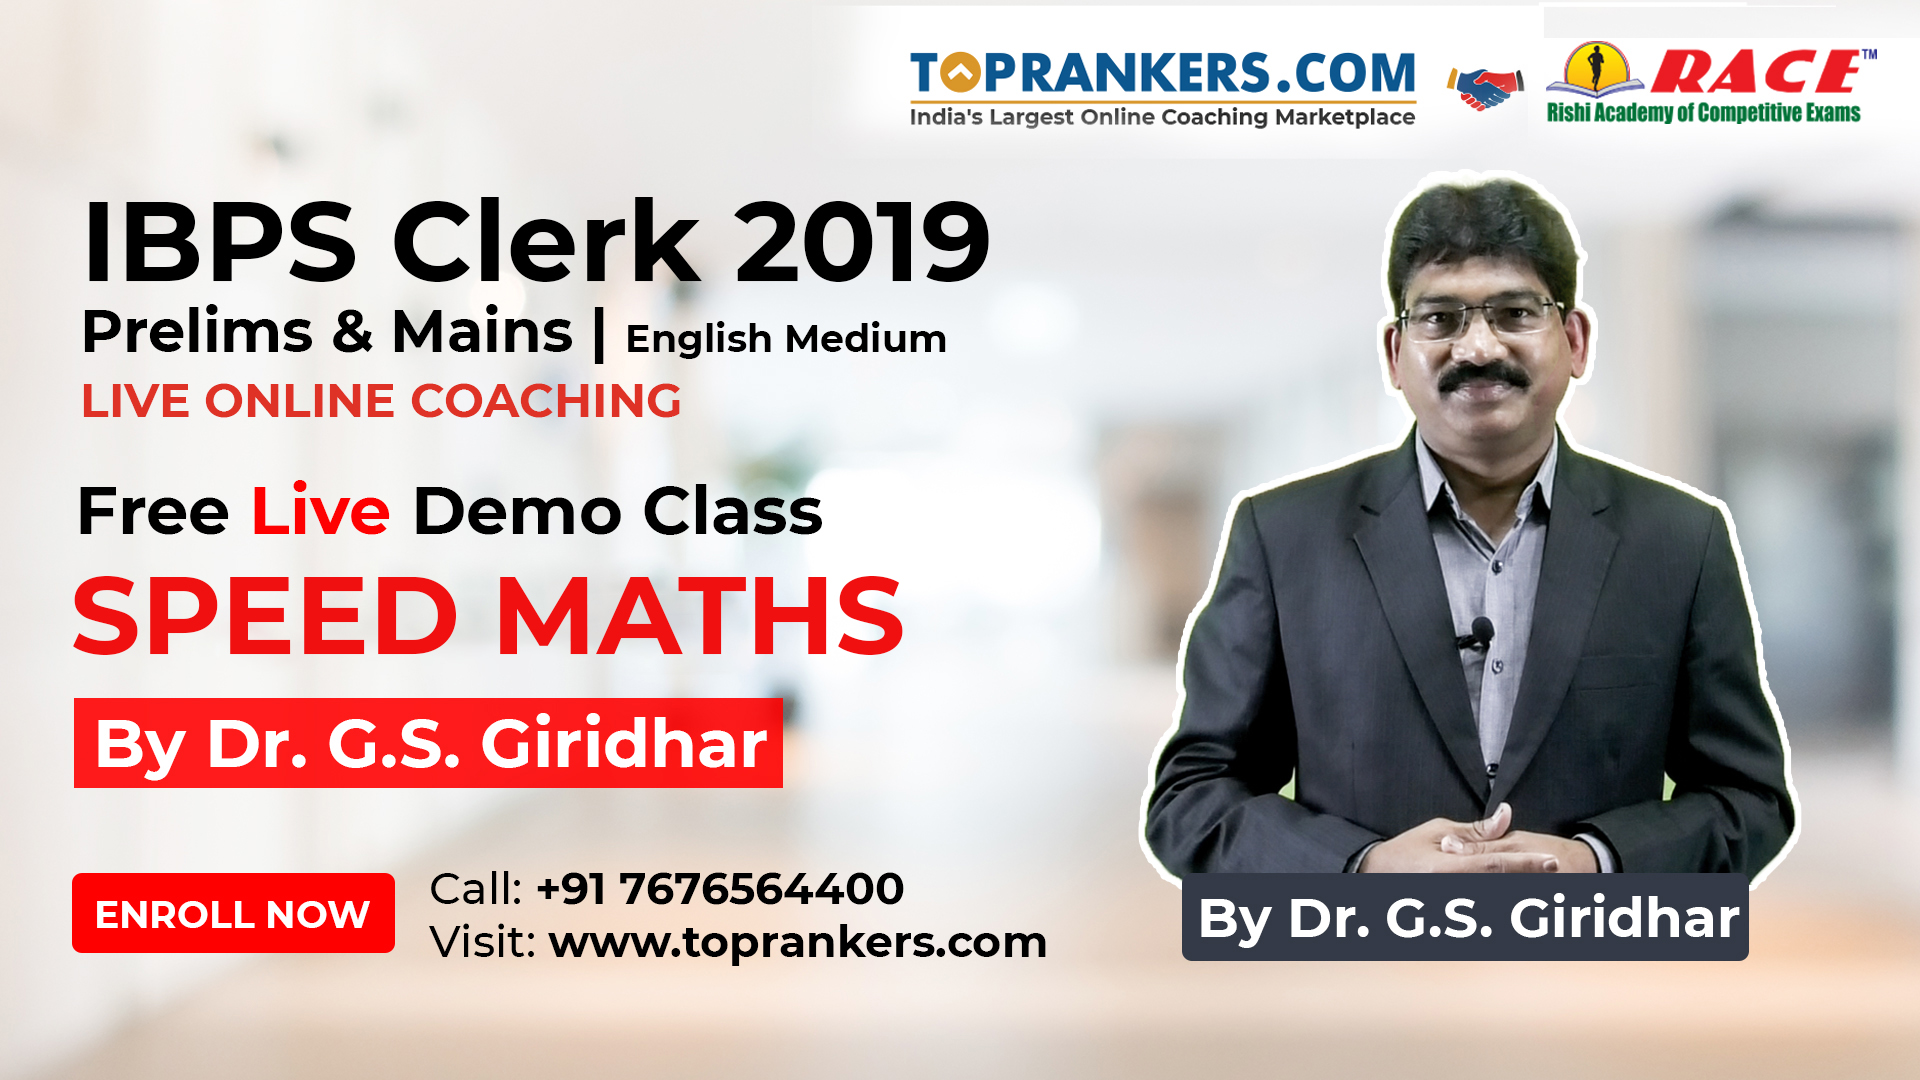 Speed Maths By Dr. G.S.Giridhar, Founder & Director